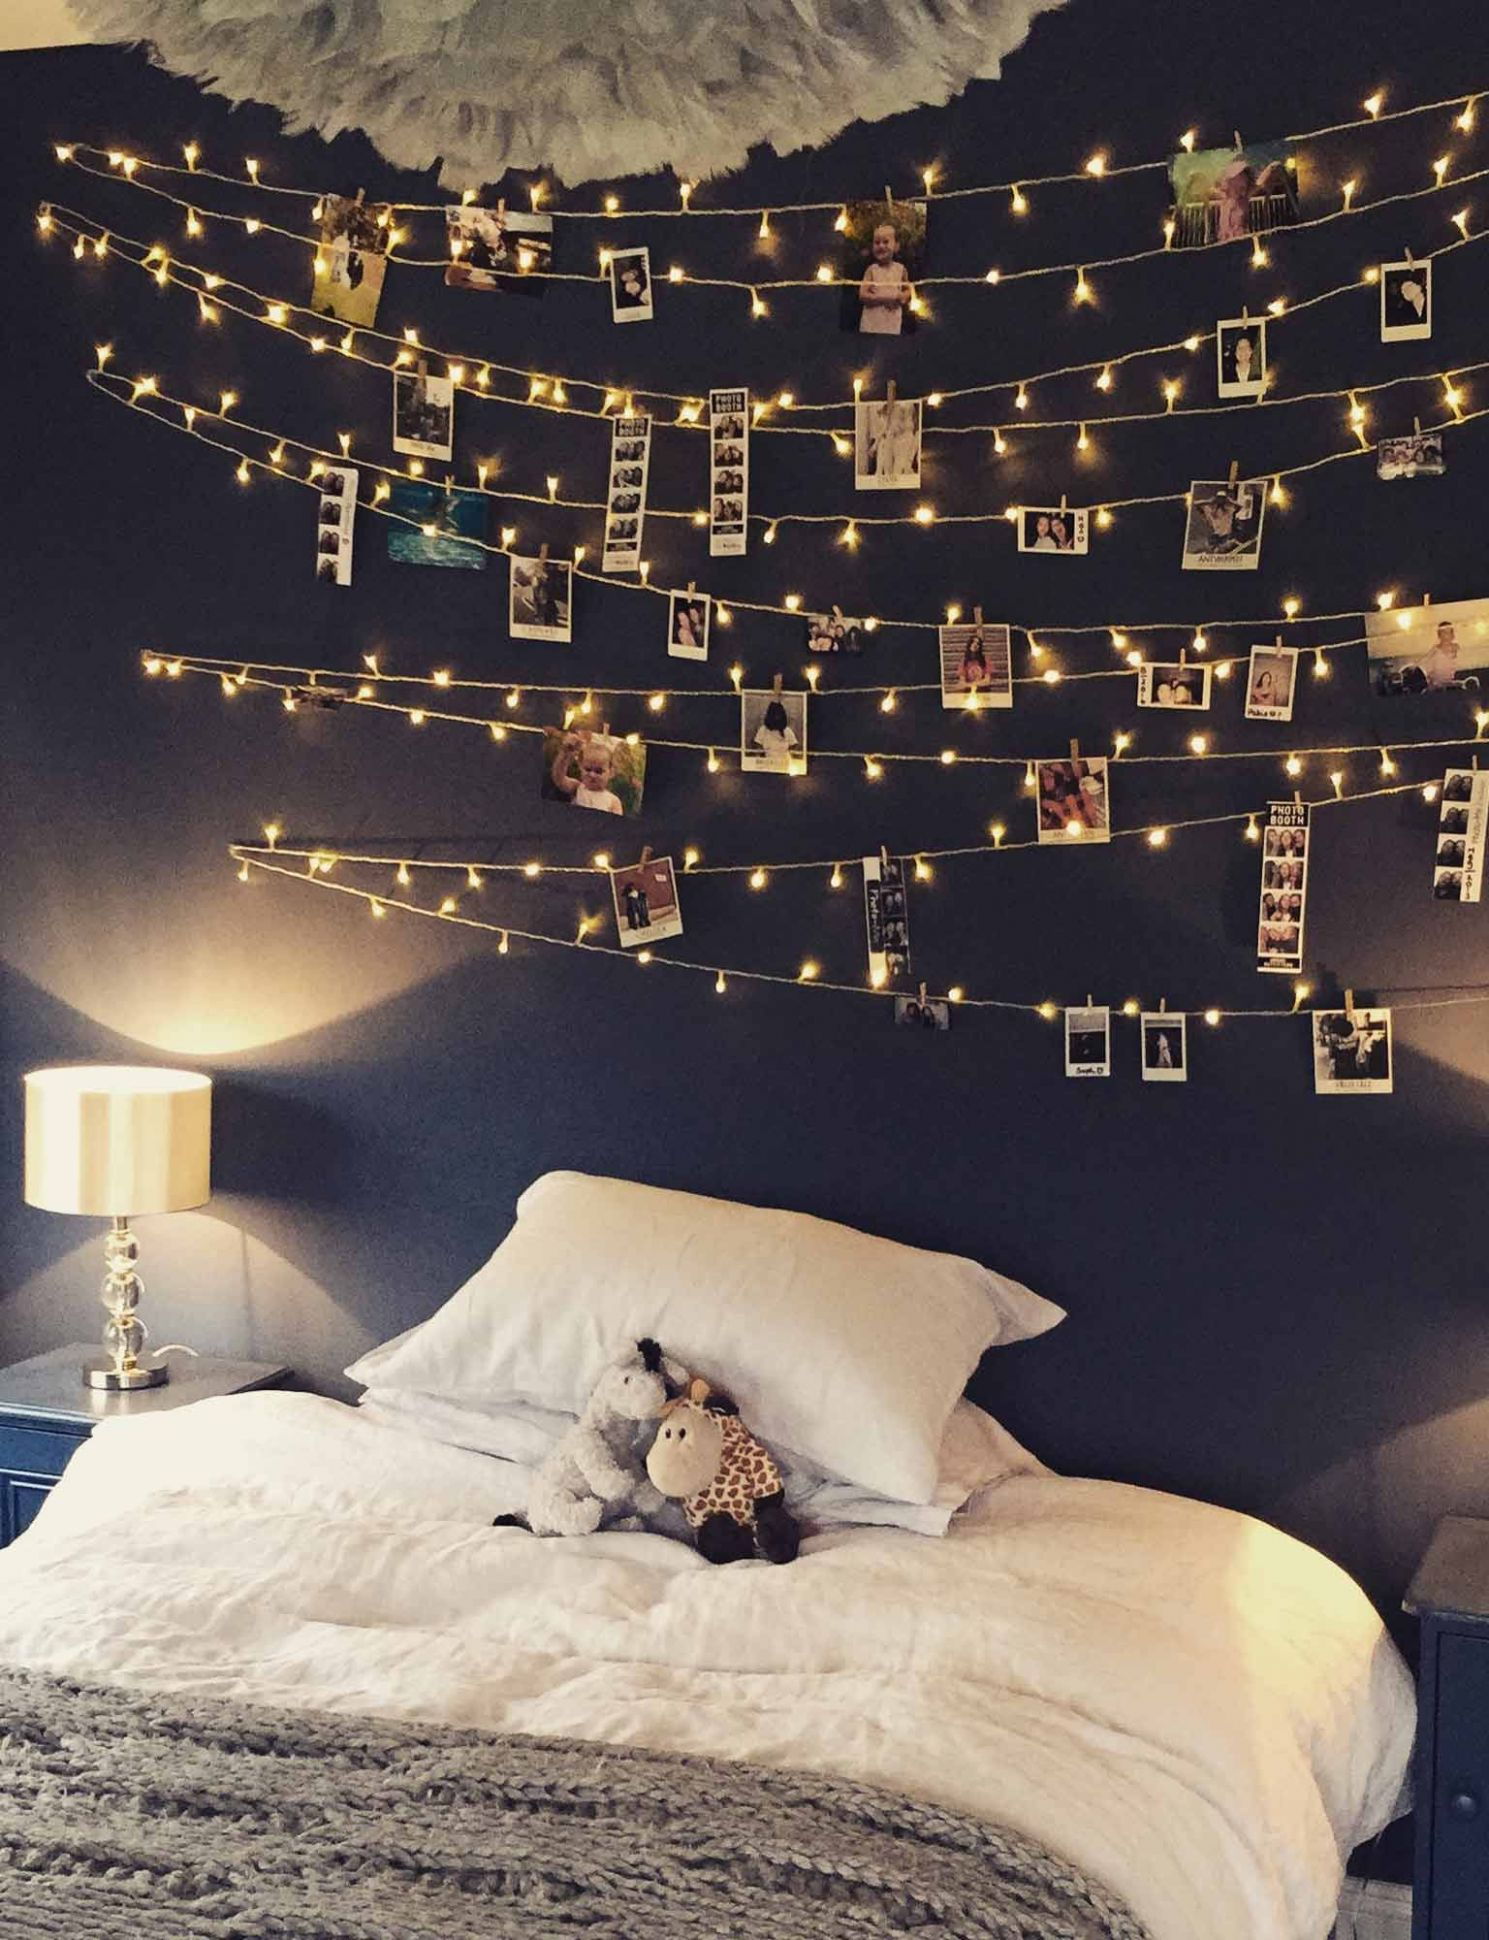 Pin on Light walls - bedroom ideas with lights